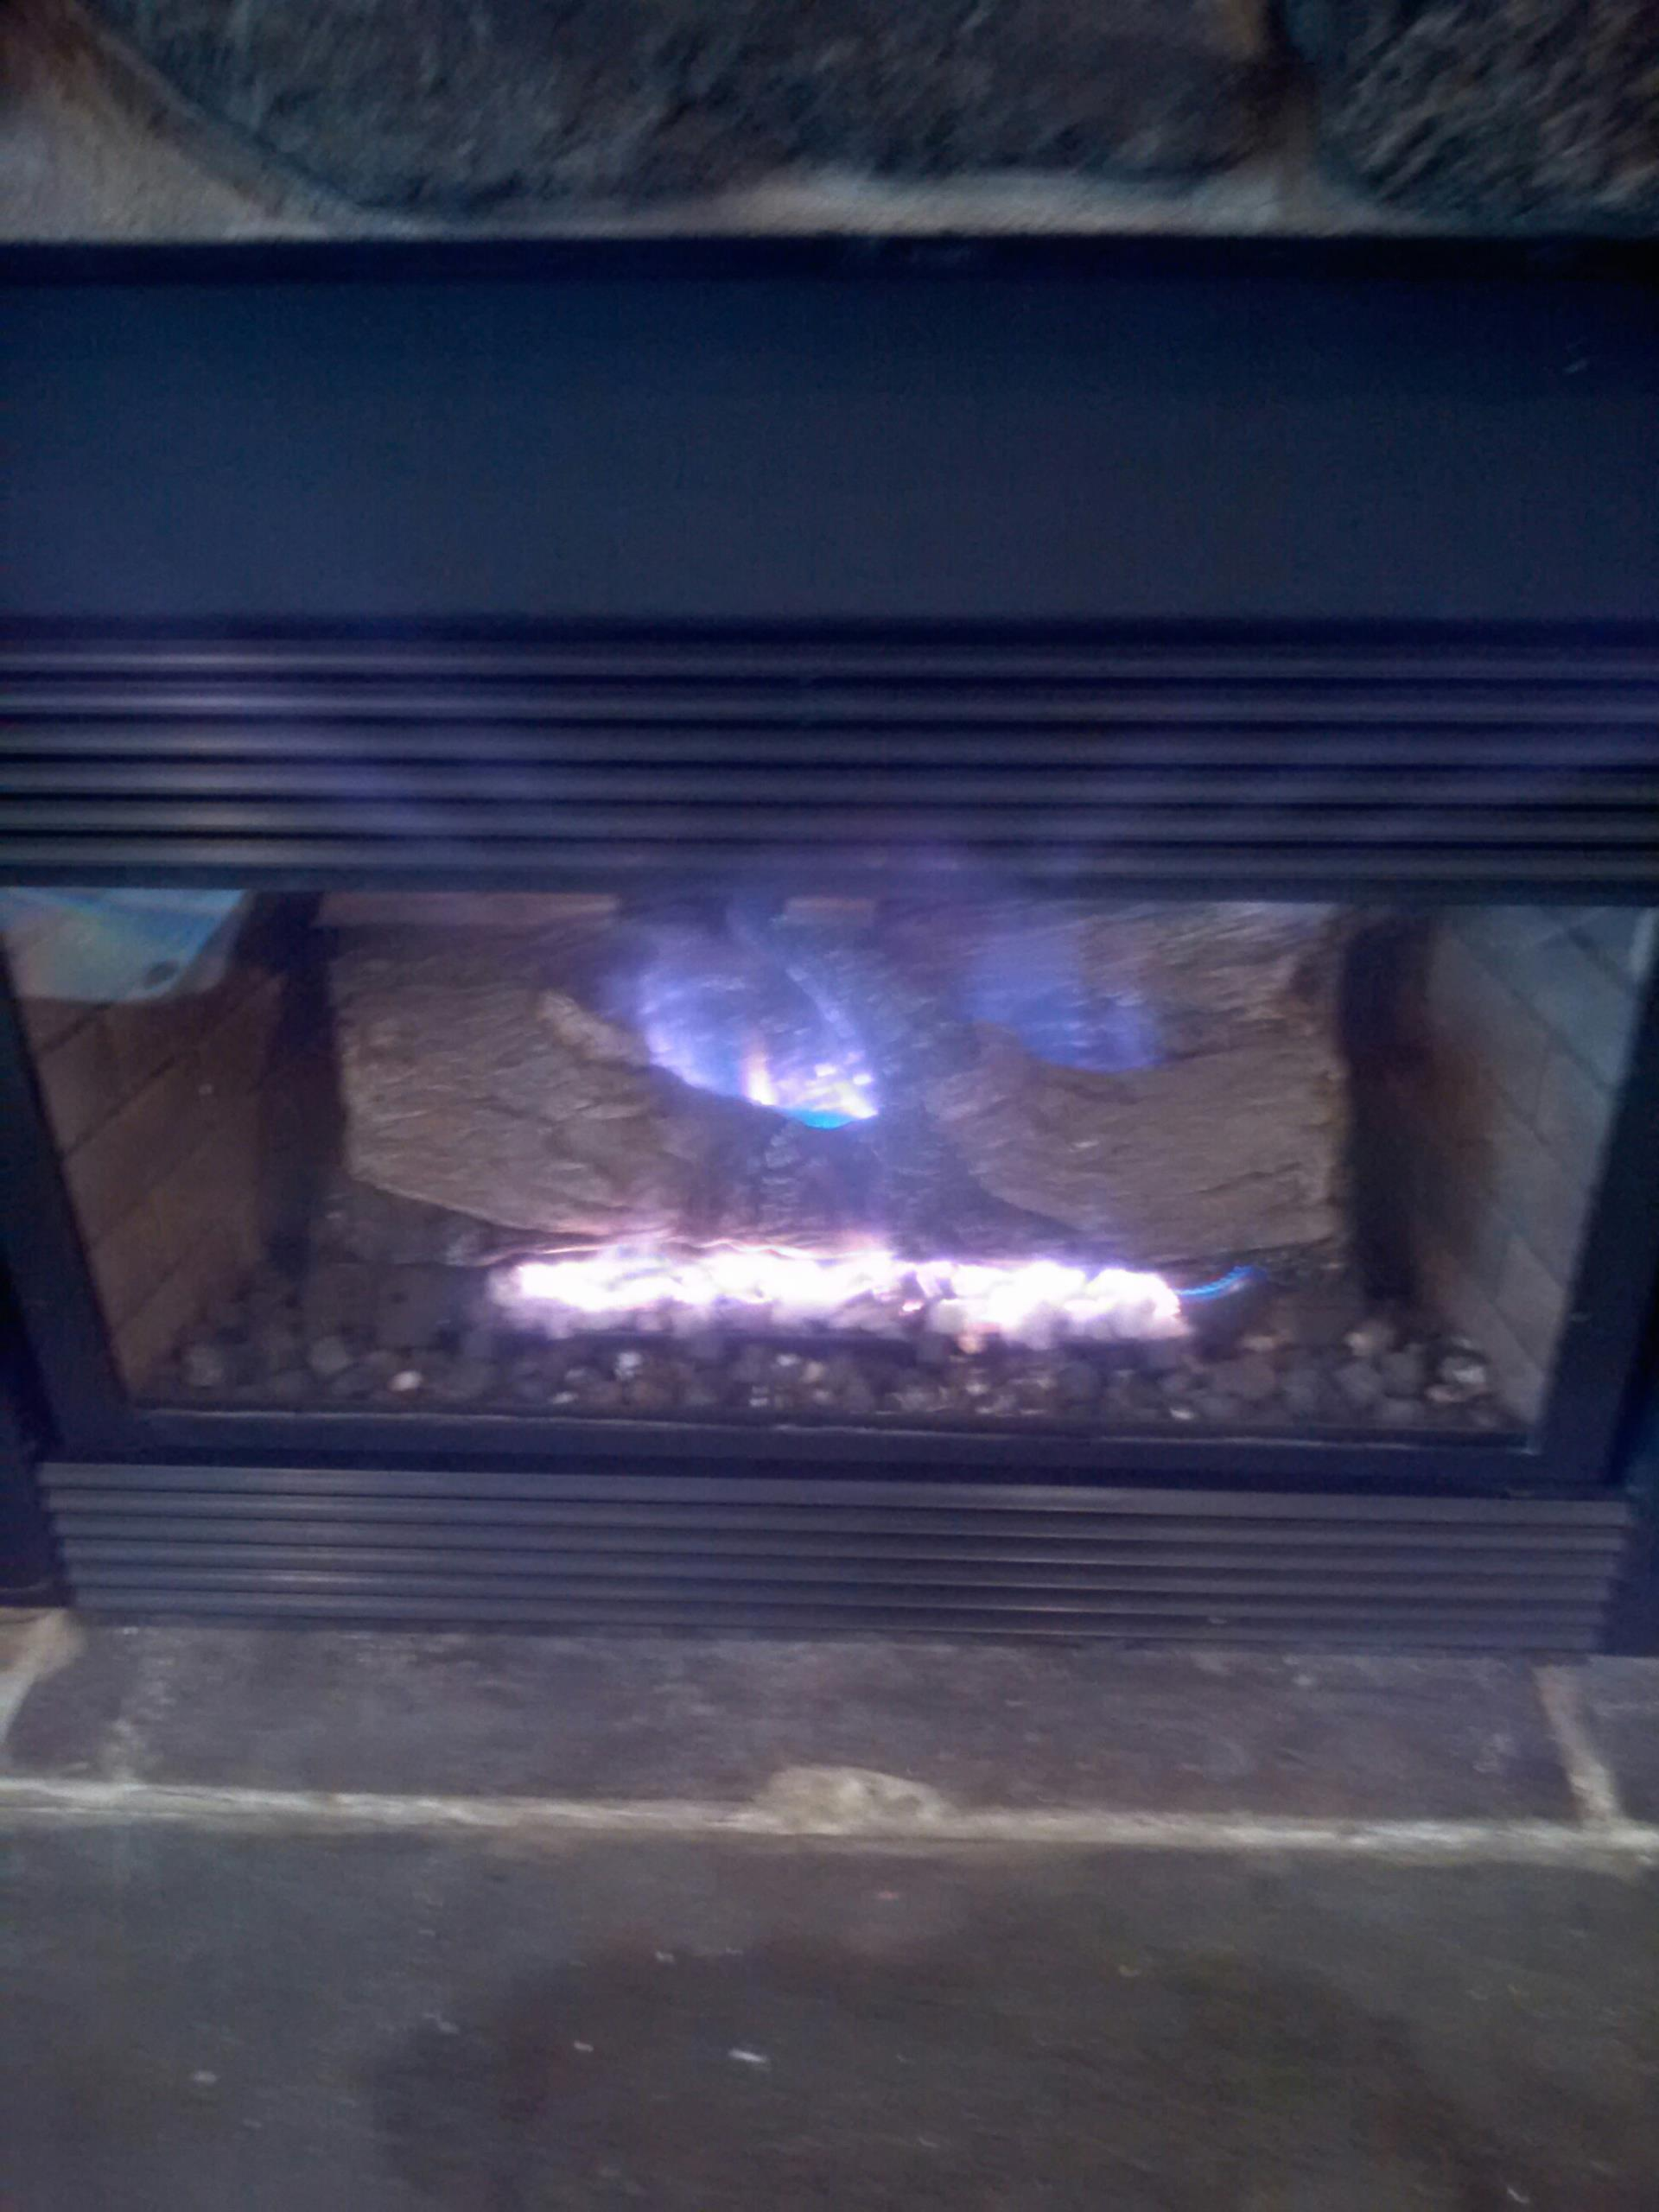 Gambrills, MD - Gambrills Maryland gas fireplace insert & gas logs installation repair service call.